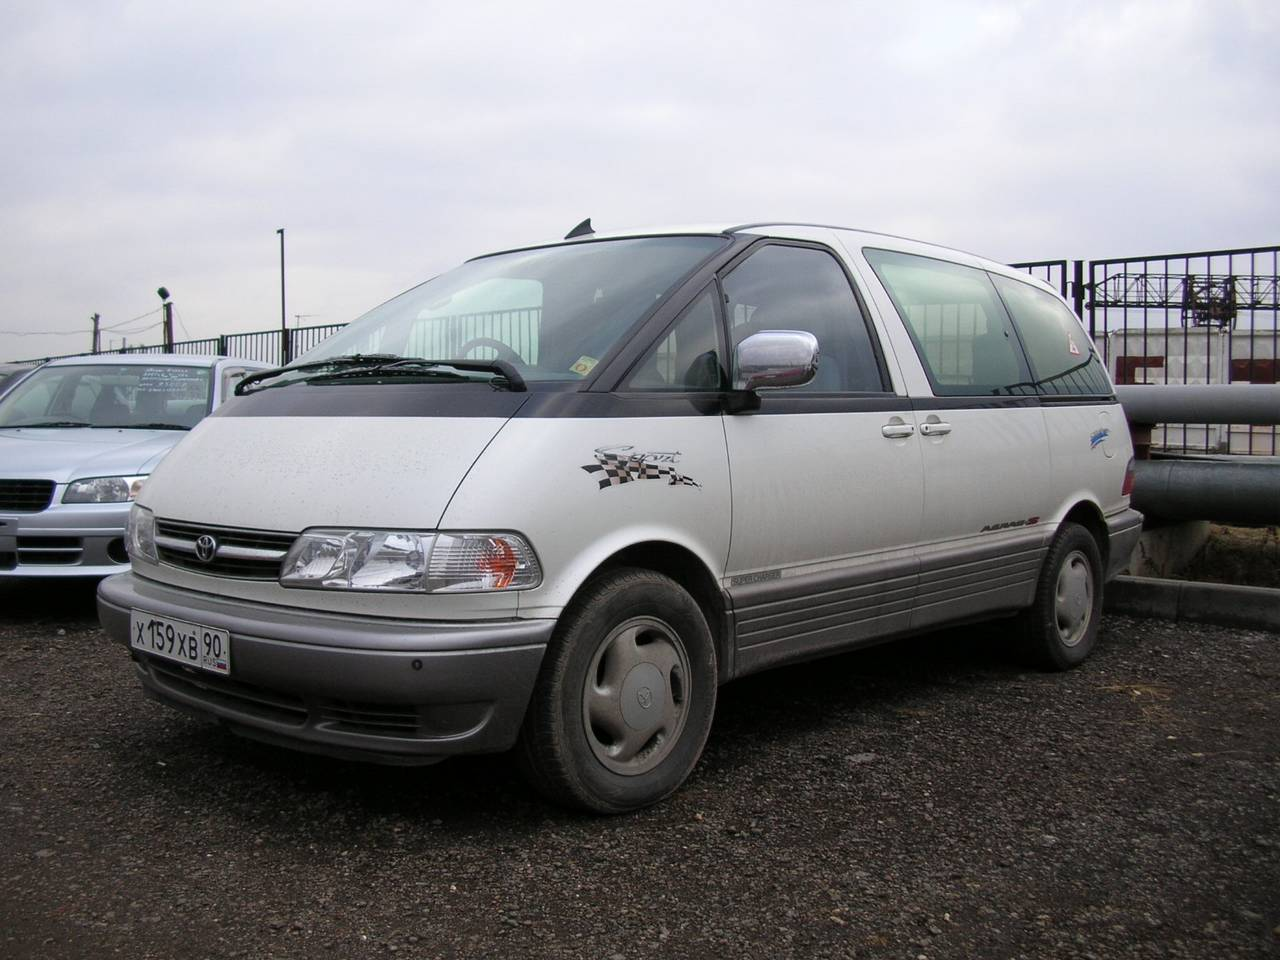 Used 1998 Toyota Estima Photos